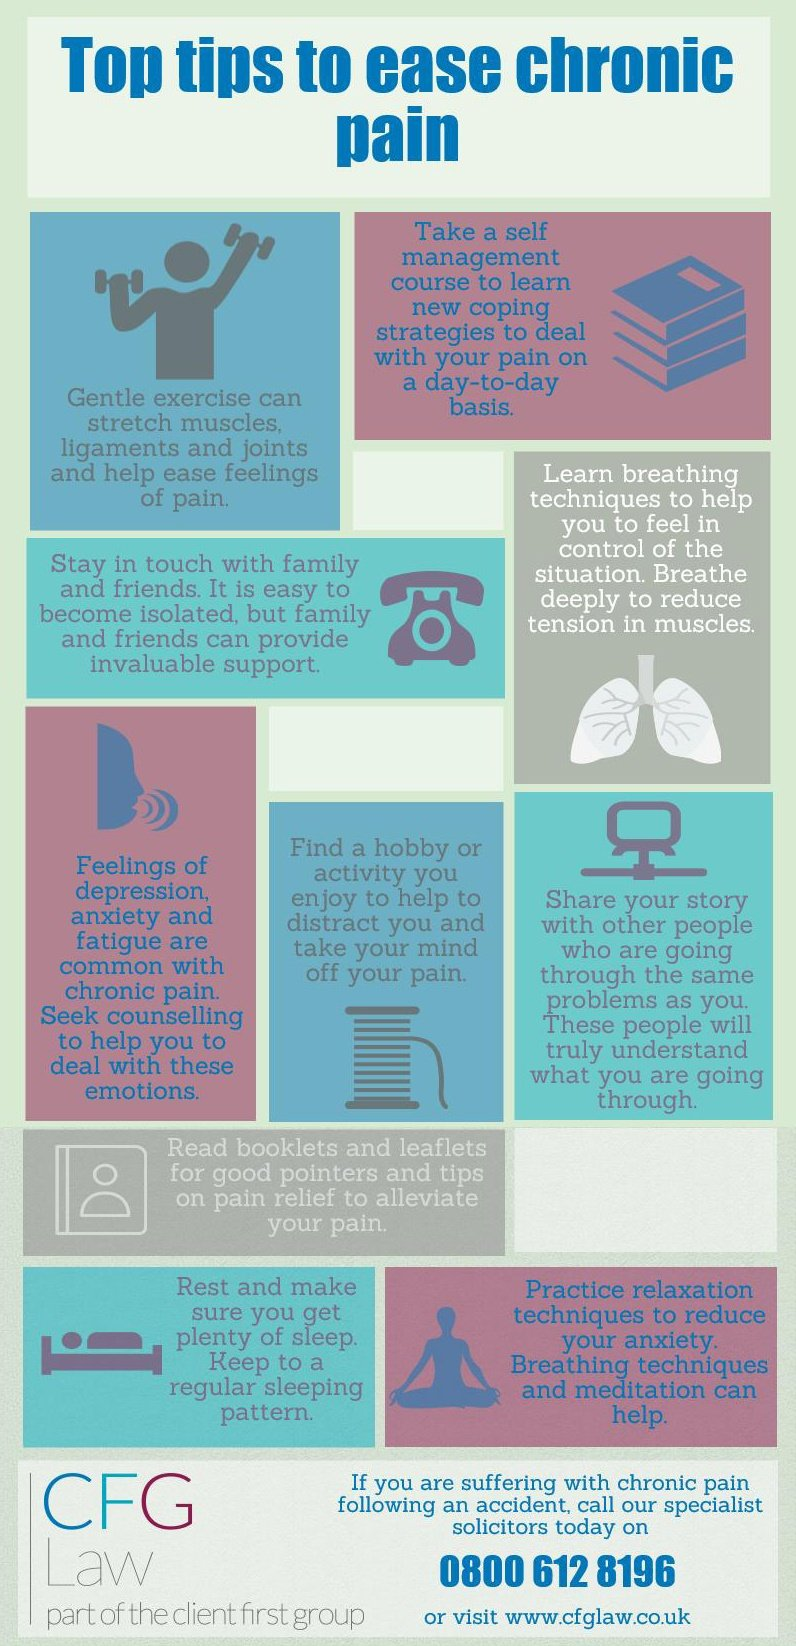 Infographic: Top tips to ease chronic pain